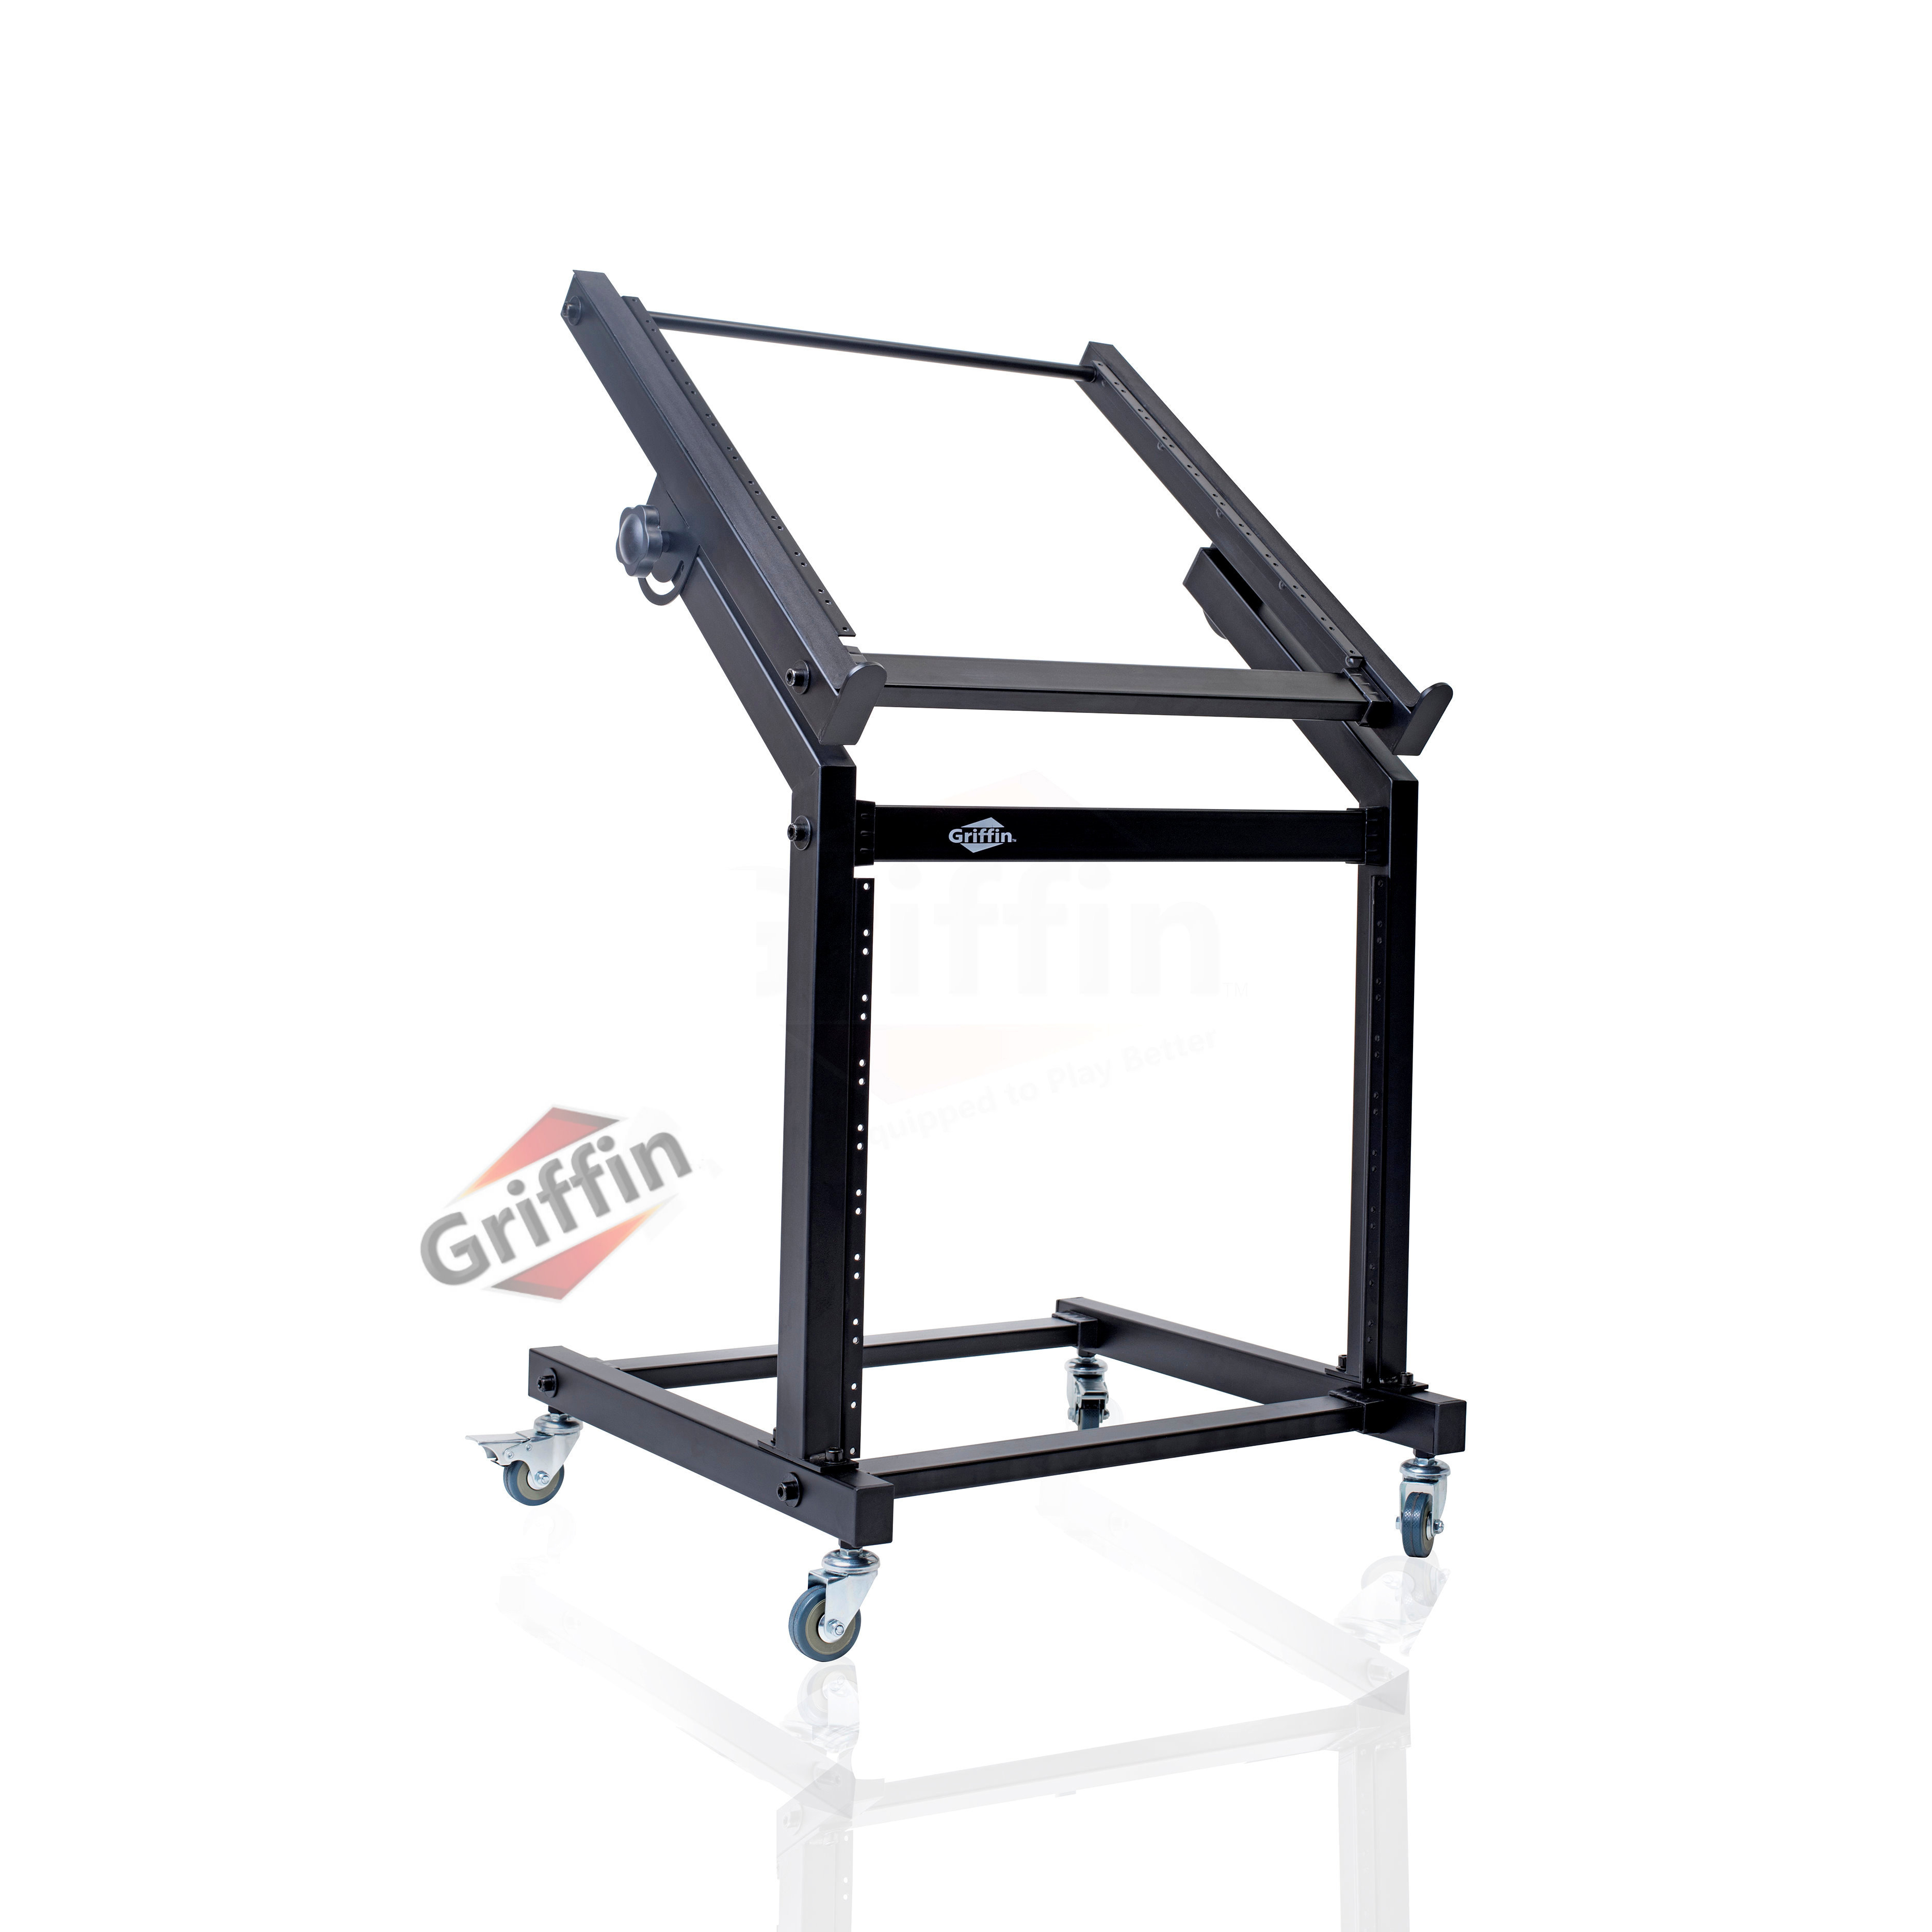 Rackmount Stands & Road Cases